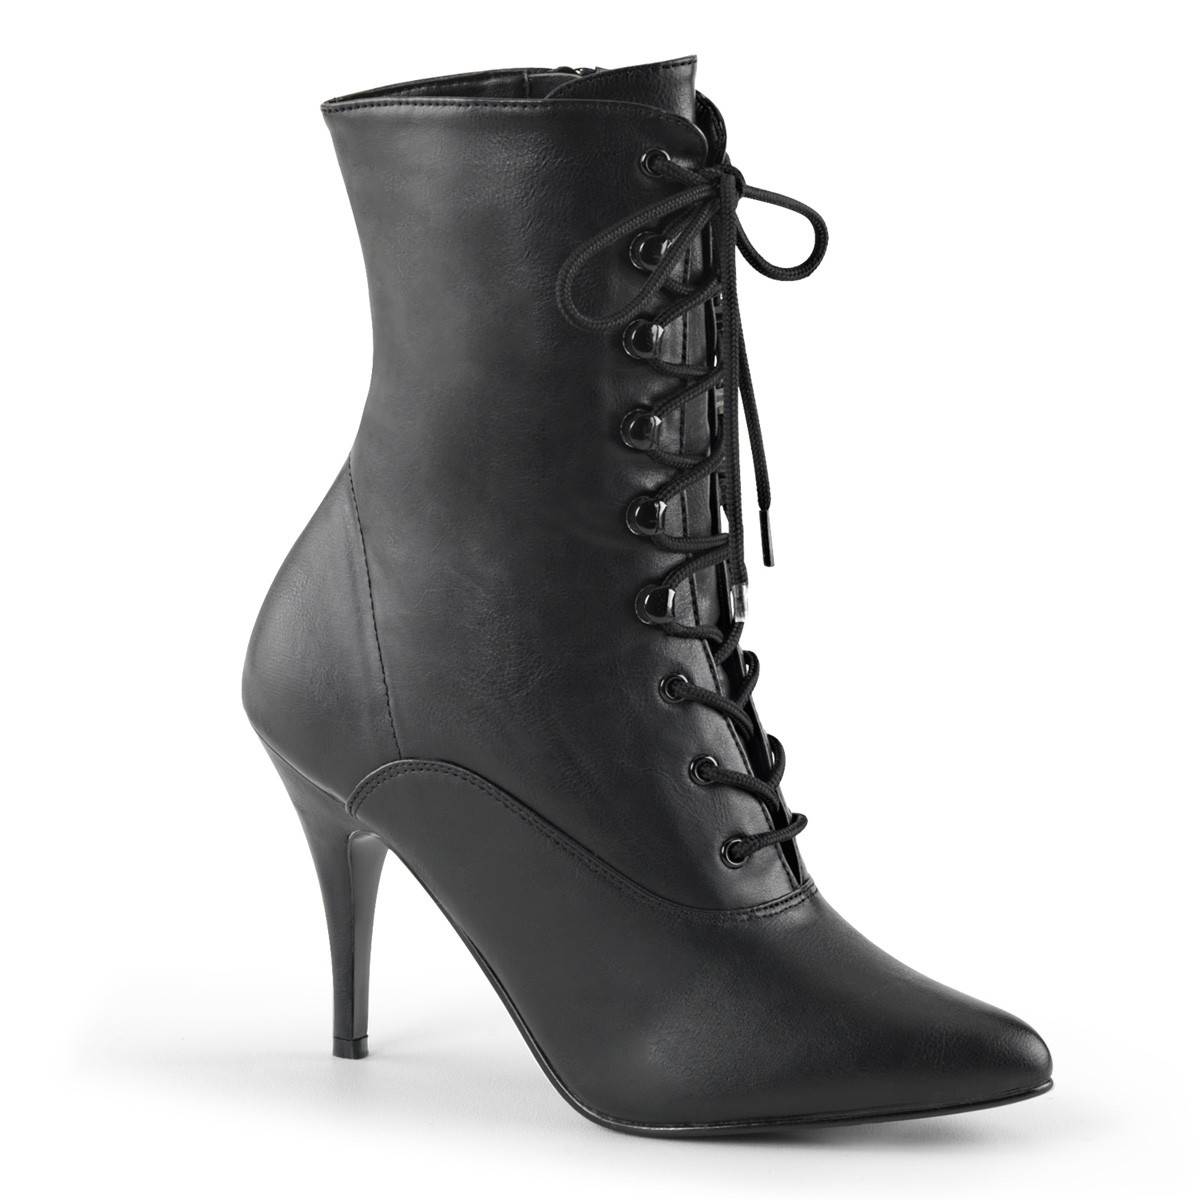 """4"""" Heel Lace-Up Ankle Boot - Black*"""